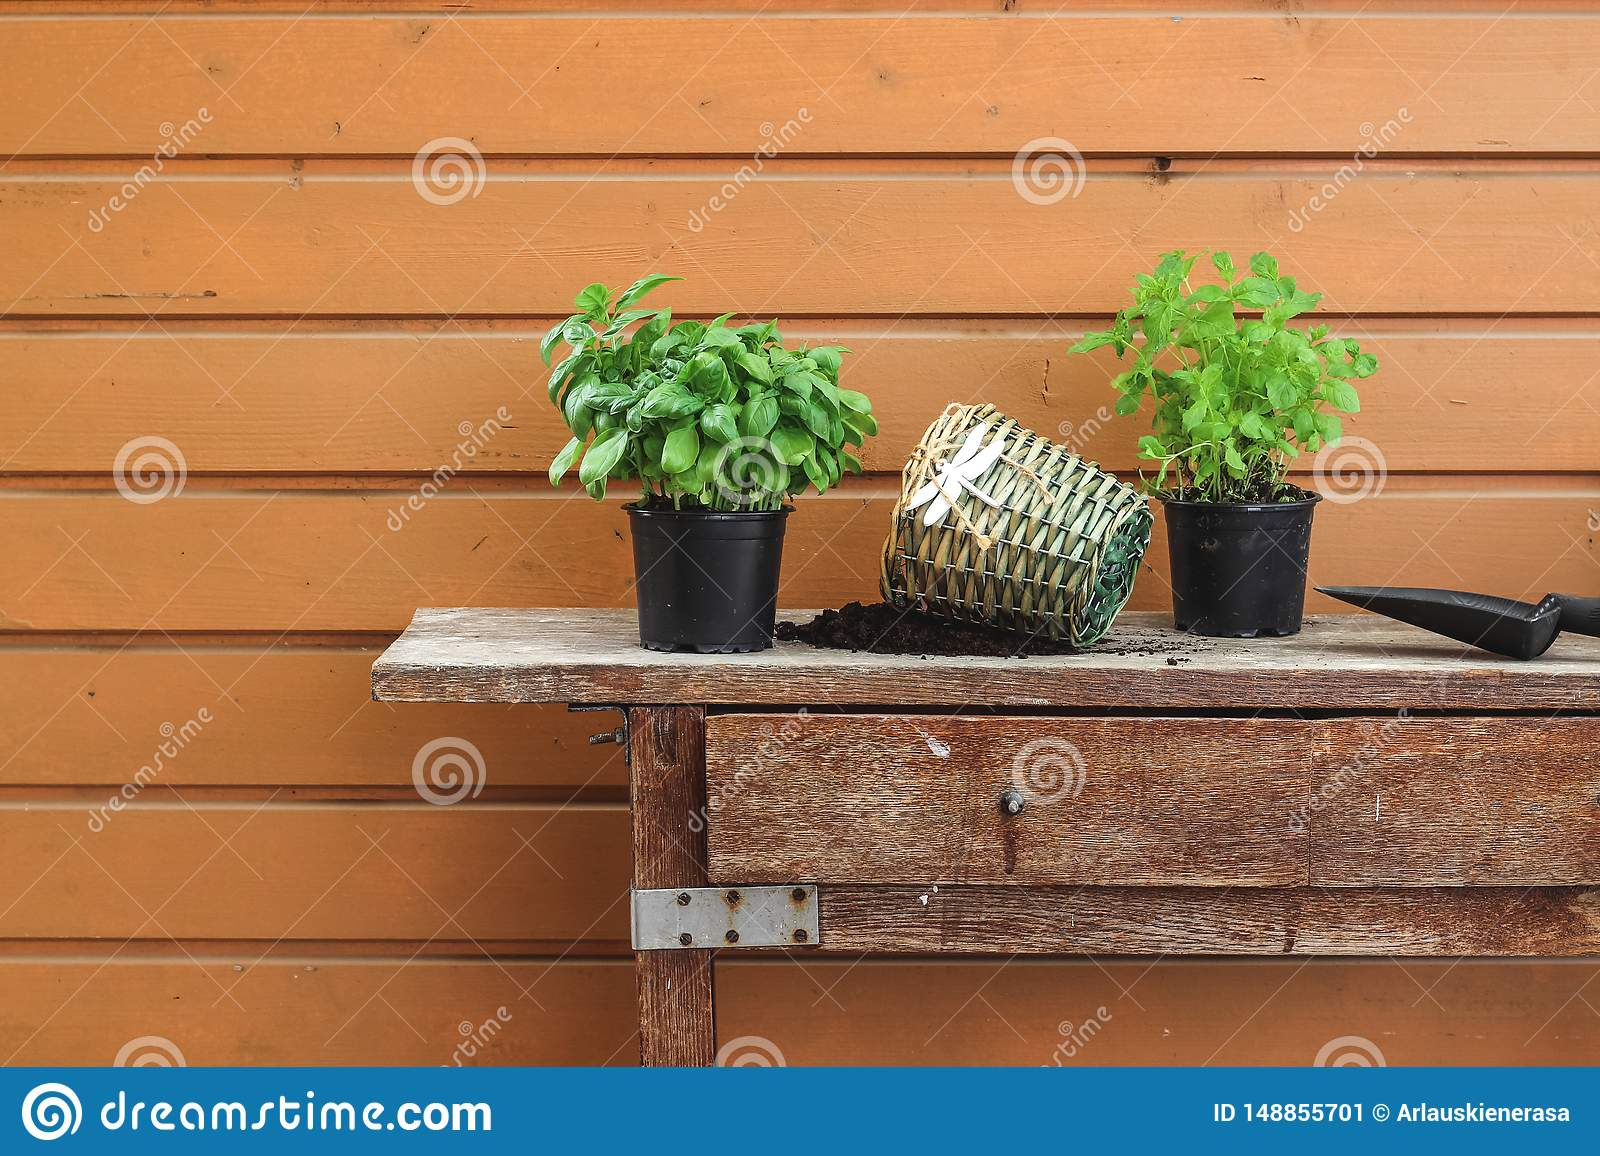 Re-potting herbs on an old garden table in spring